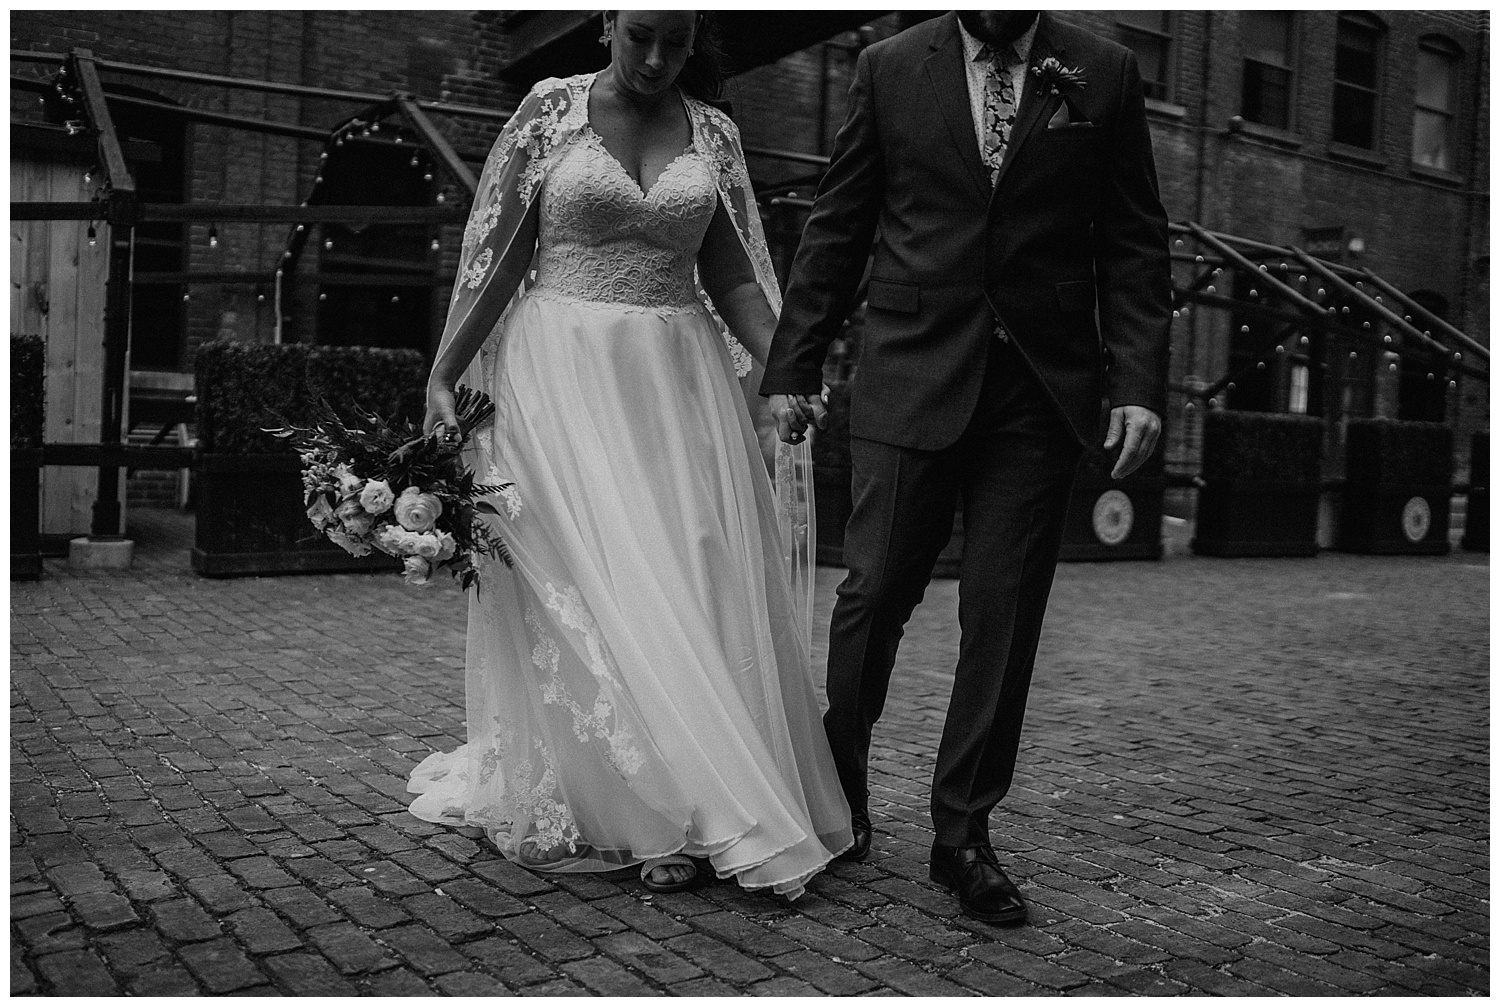 Katie Marie Photography | Archeo Wedding Arta Gallery Wedding | Distillery District Wedding | Toronto Wedding Photographer | Hamilton Toronto Ontario Wedding Photographer |_0034.jpg